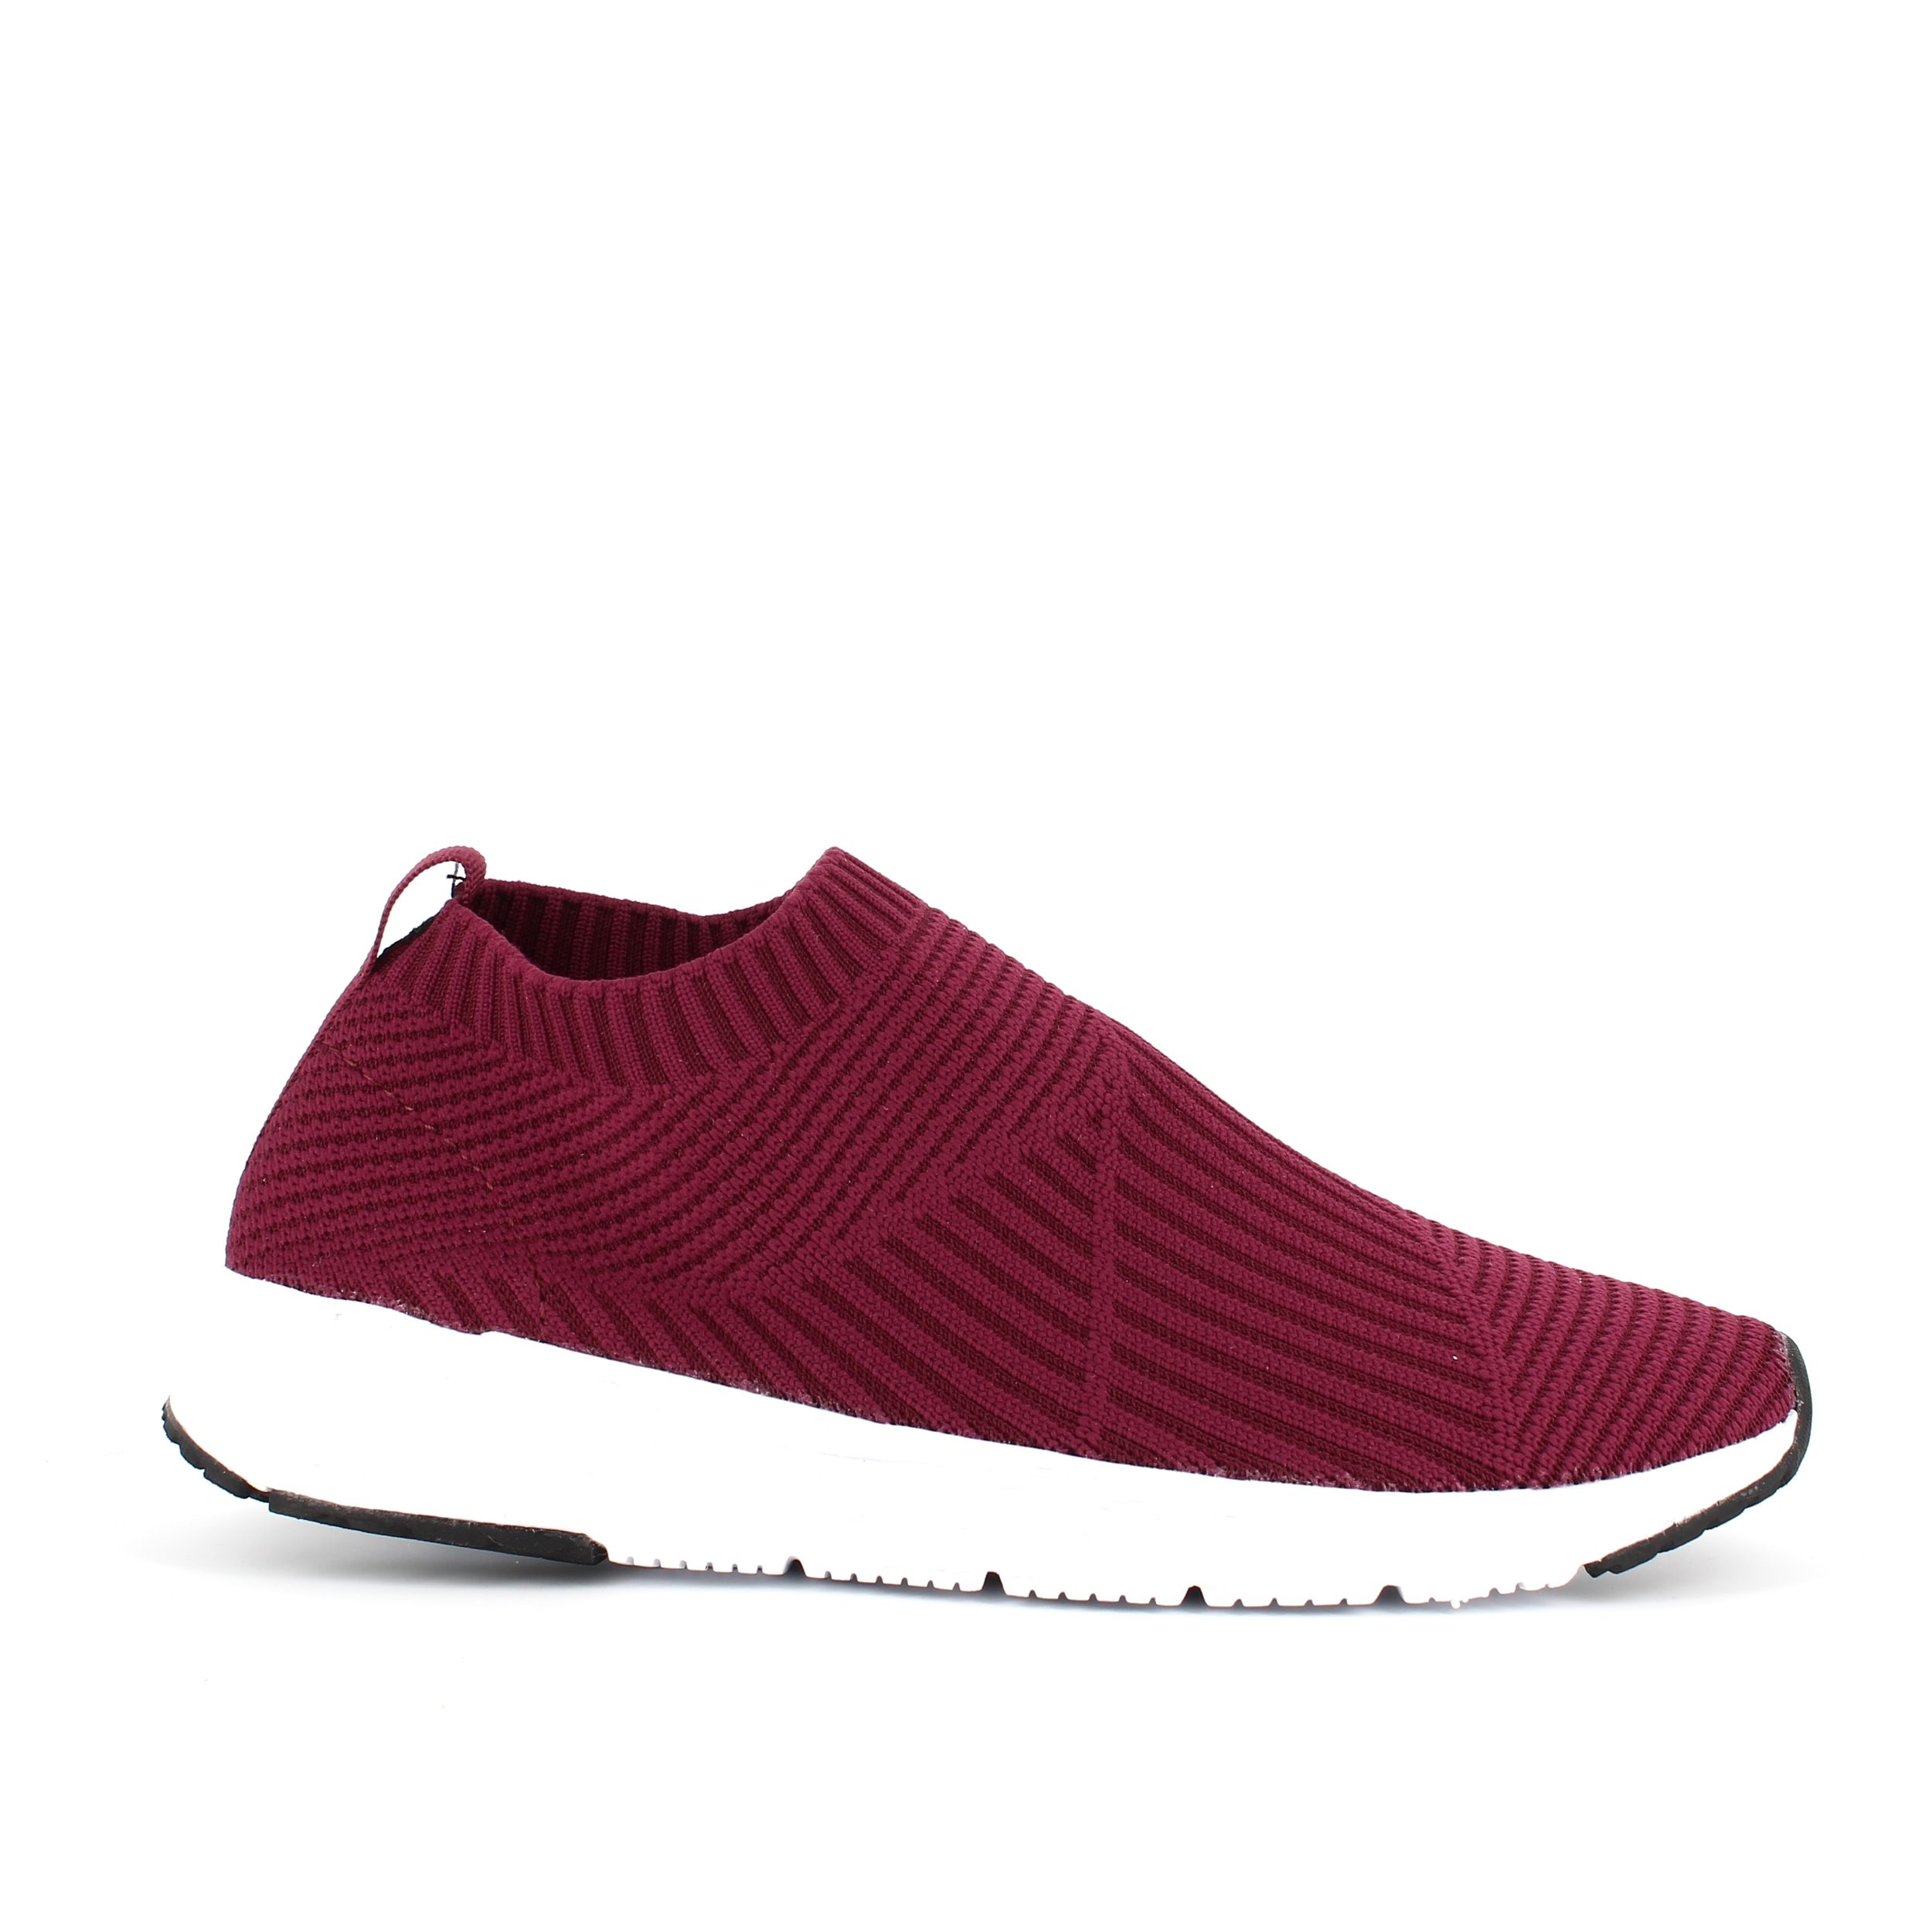 Image of   Bordeaux strikket slip in sneakers - god til smalle fødder - 39